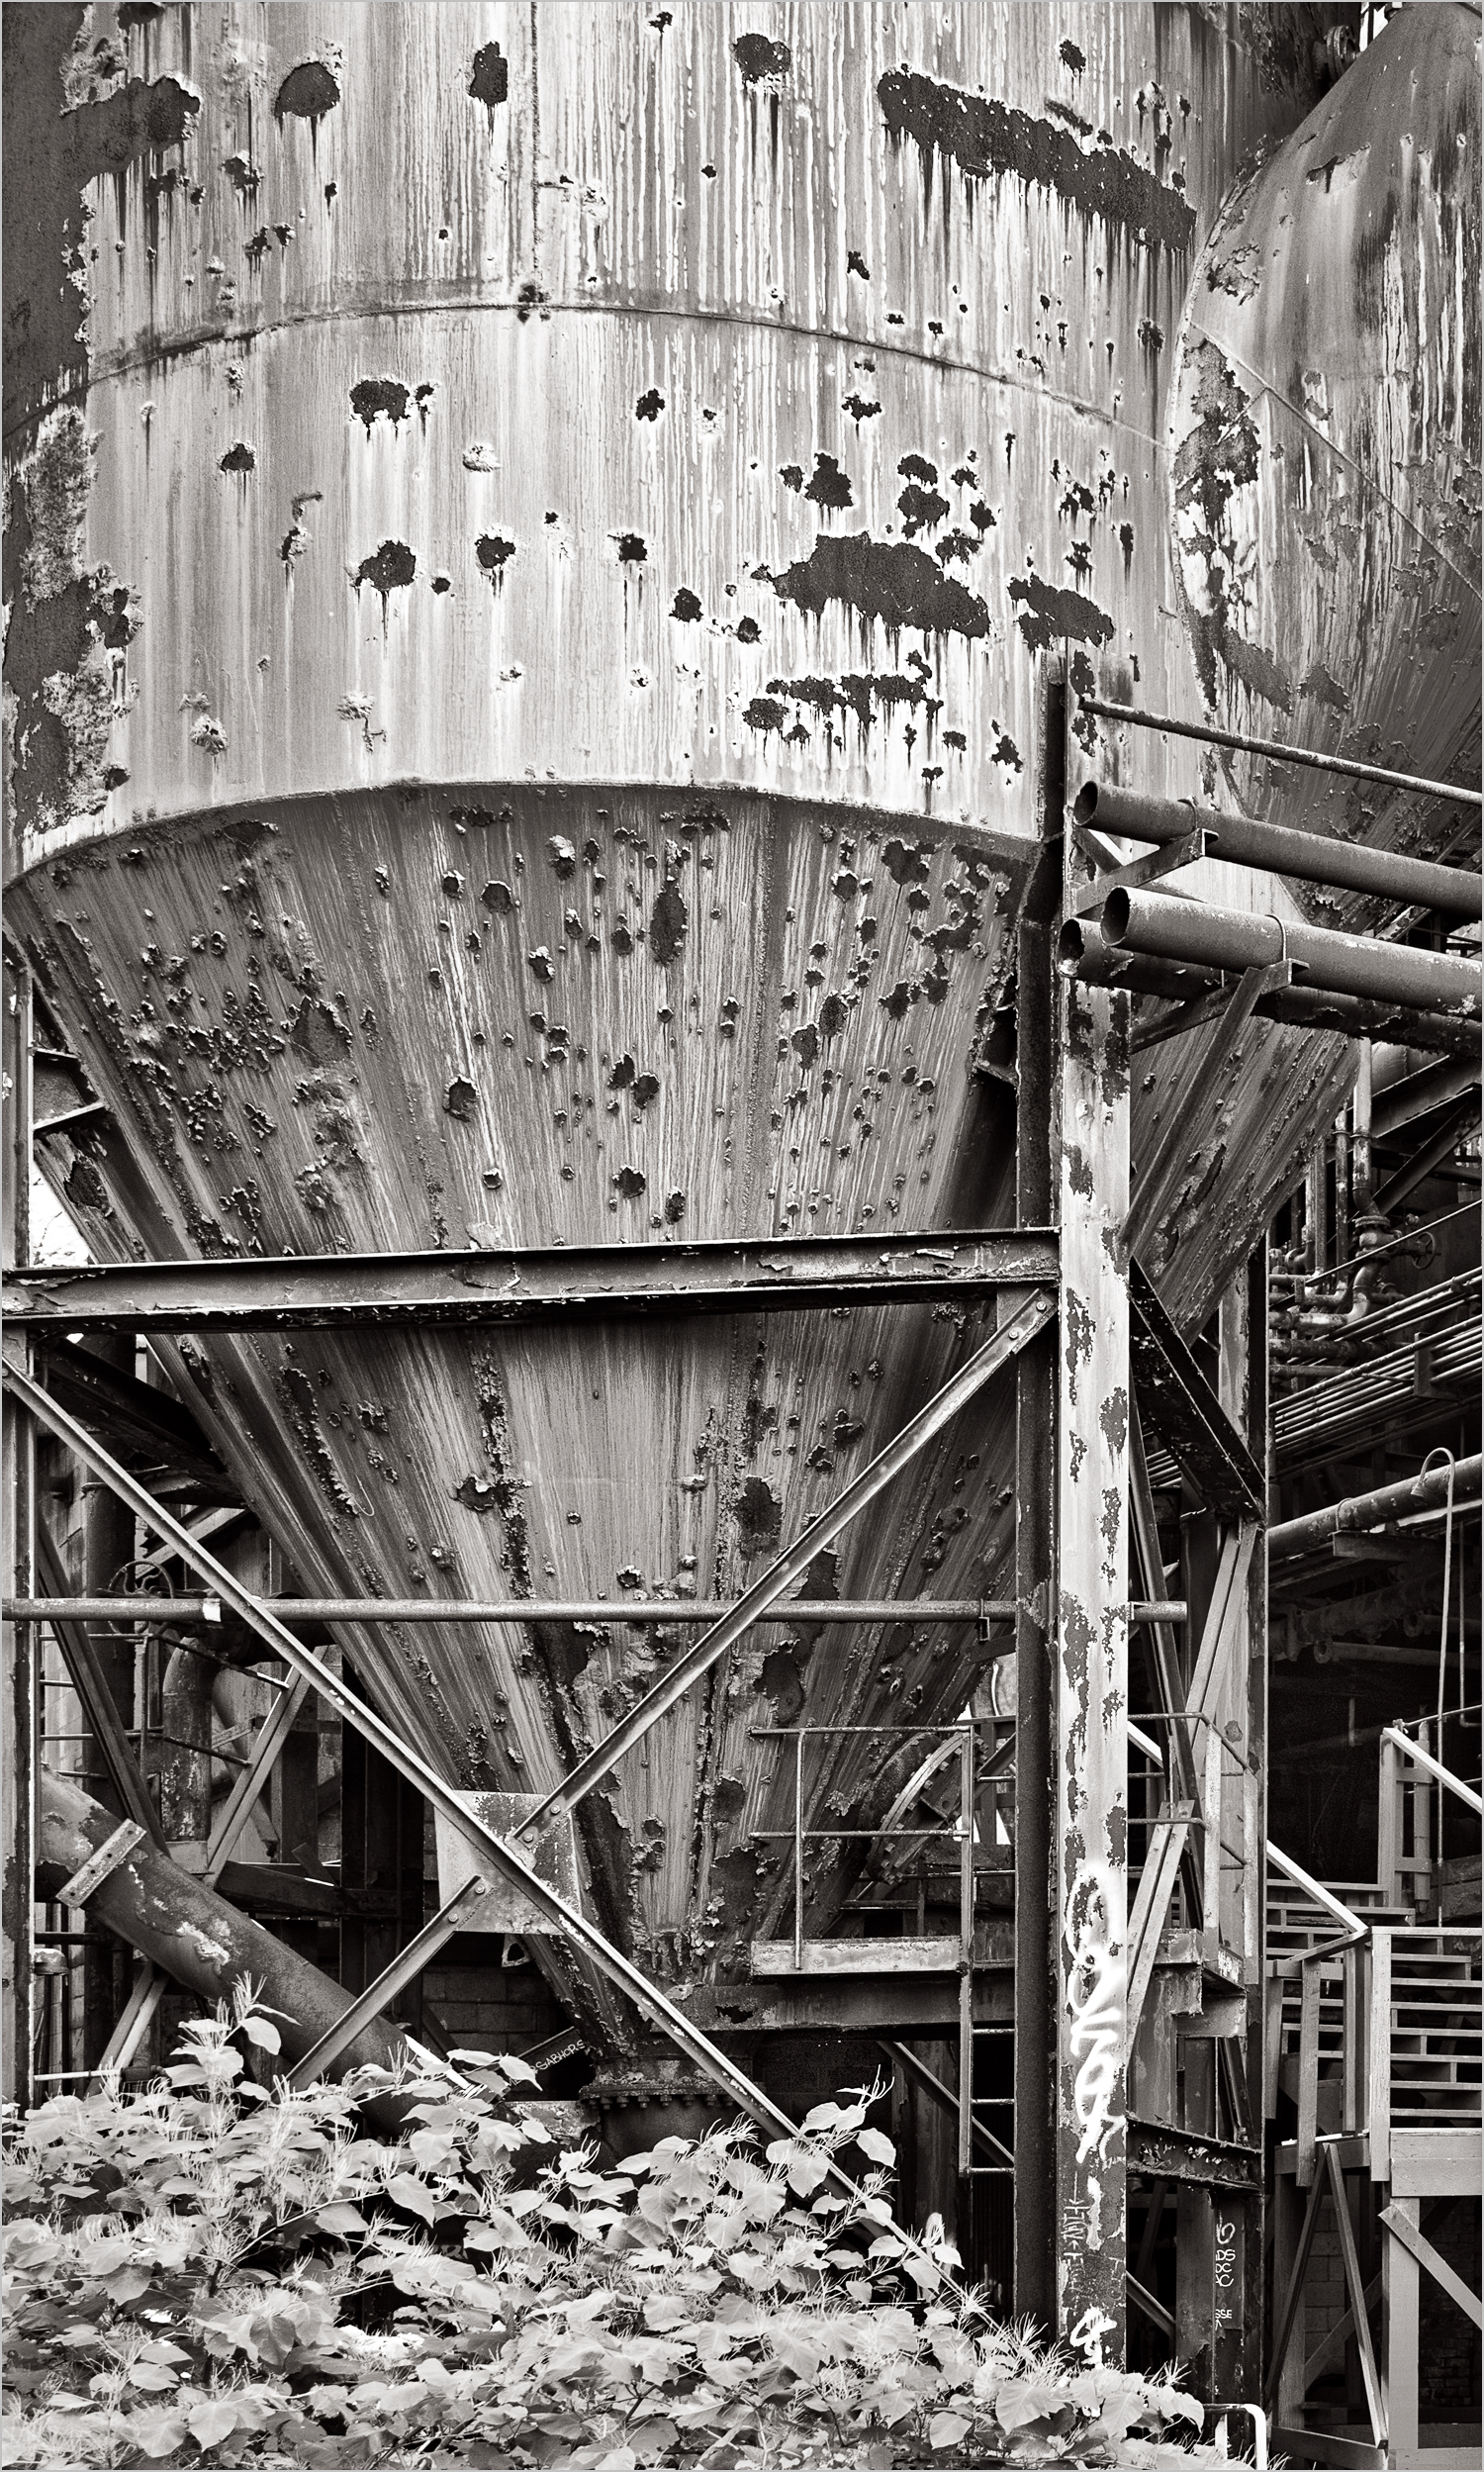 Carrie Furnace downcomers. These were used to collect and recycle wastes from the furnace.